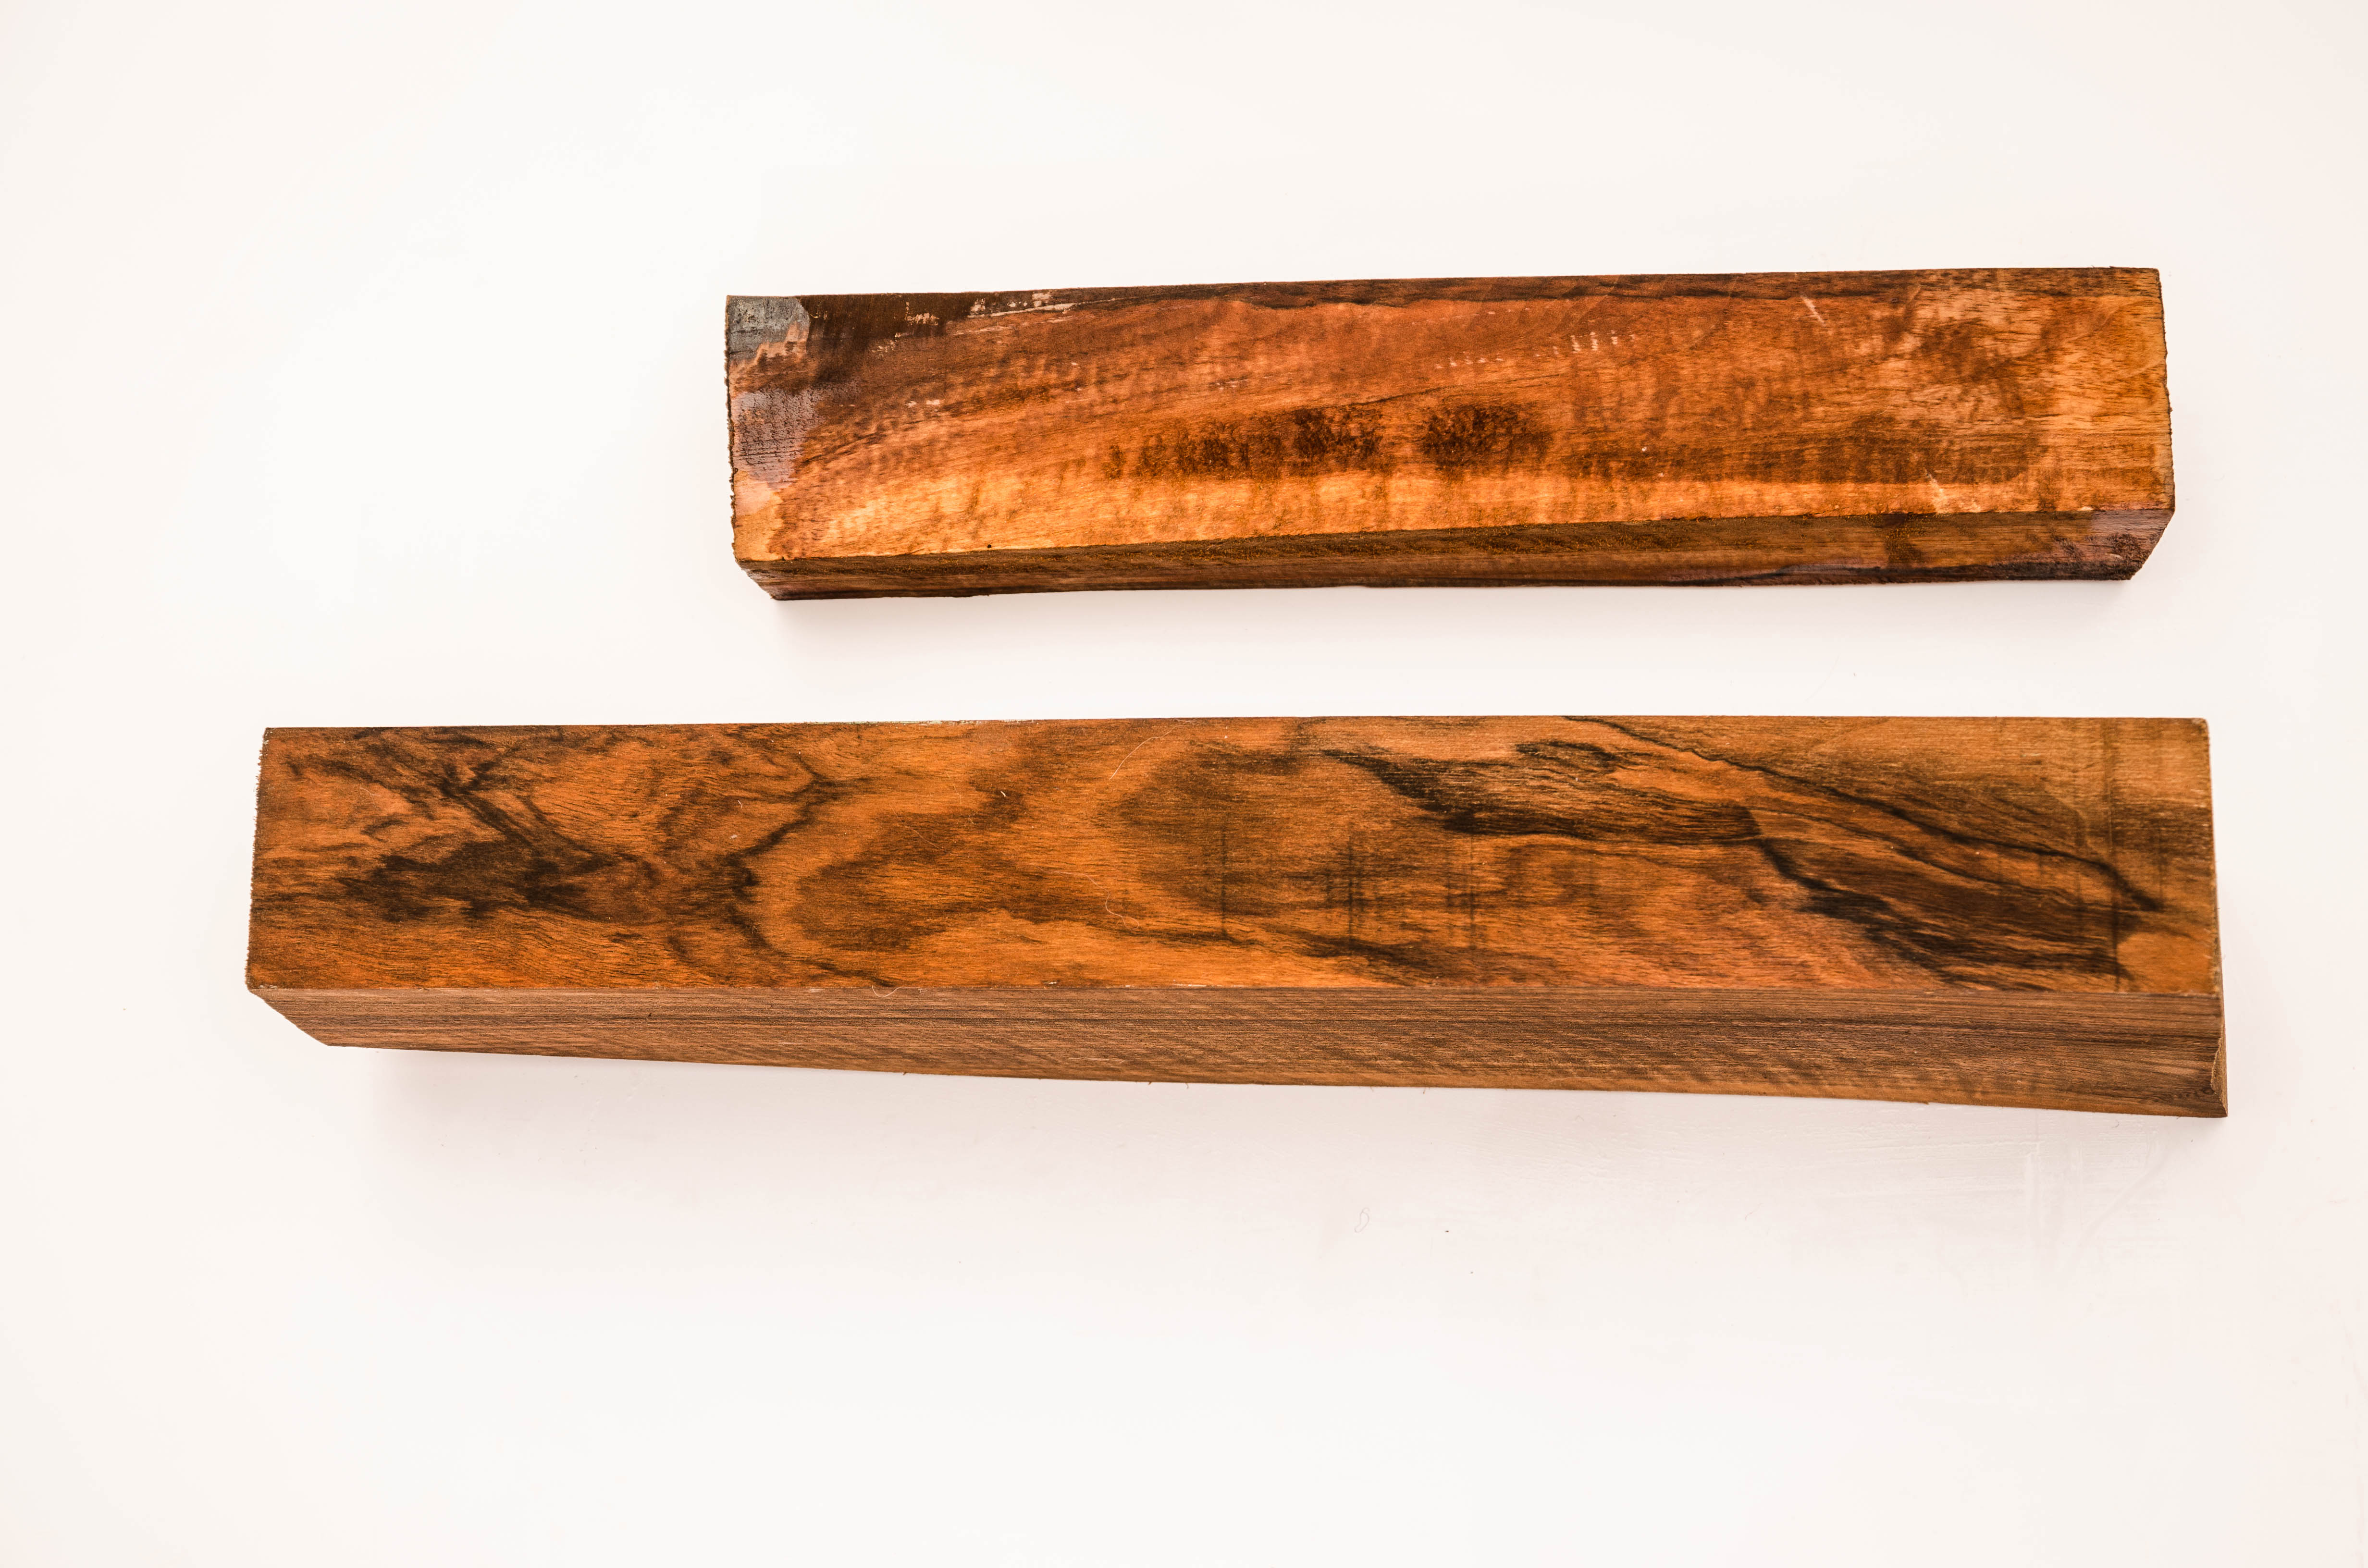 walnut_stock_blanks_for_guns_and_rifles-0590